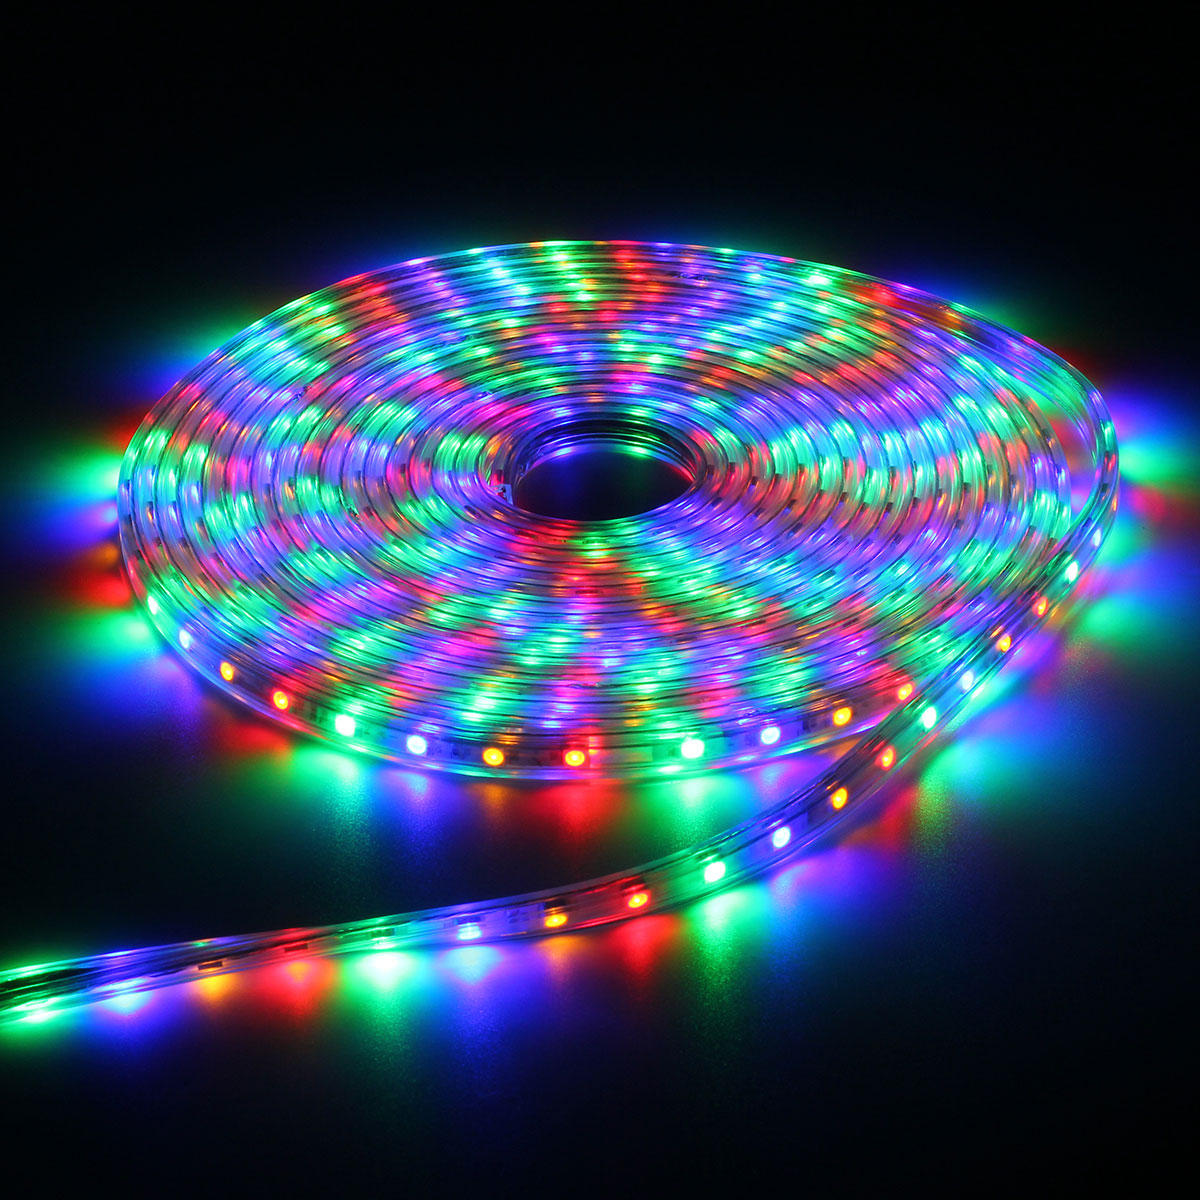 220V 9M 5050 LED SMD Outdoor Waterproof Flexible Tape Rope Strip Light Xmas